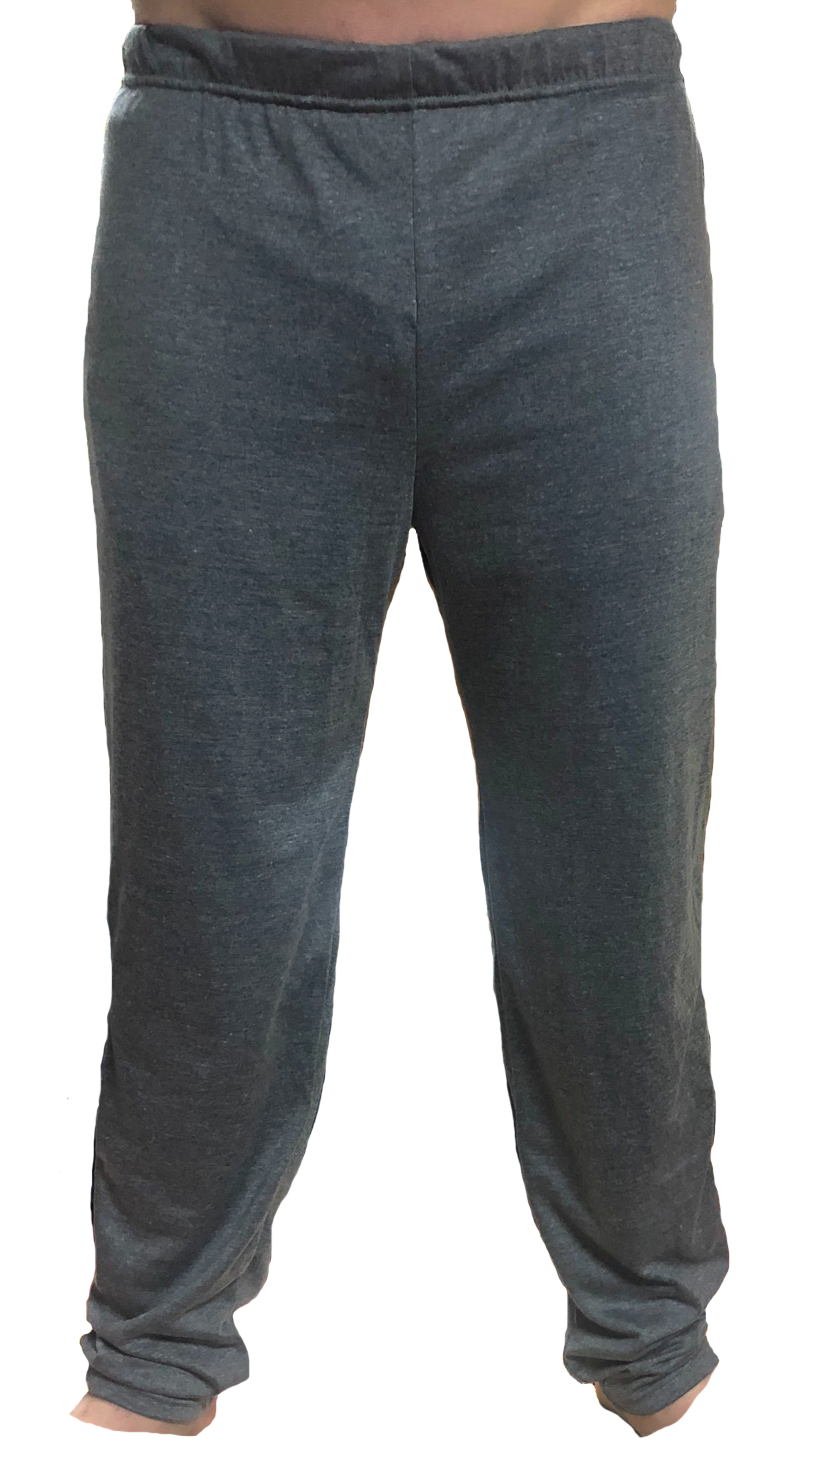 Draper Body Therapy®  Pajama Pants are designed to keep you comfortable when you're sleeping or lounging. The pants are versatile enough to wear casually, use during athletic activities, to sleep in, or as a base layer on chilly days.